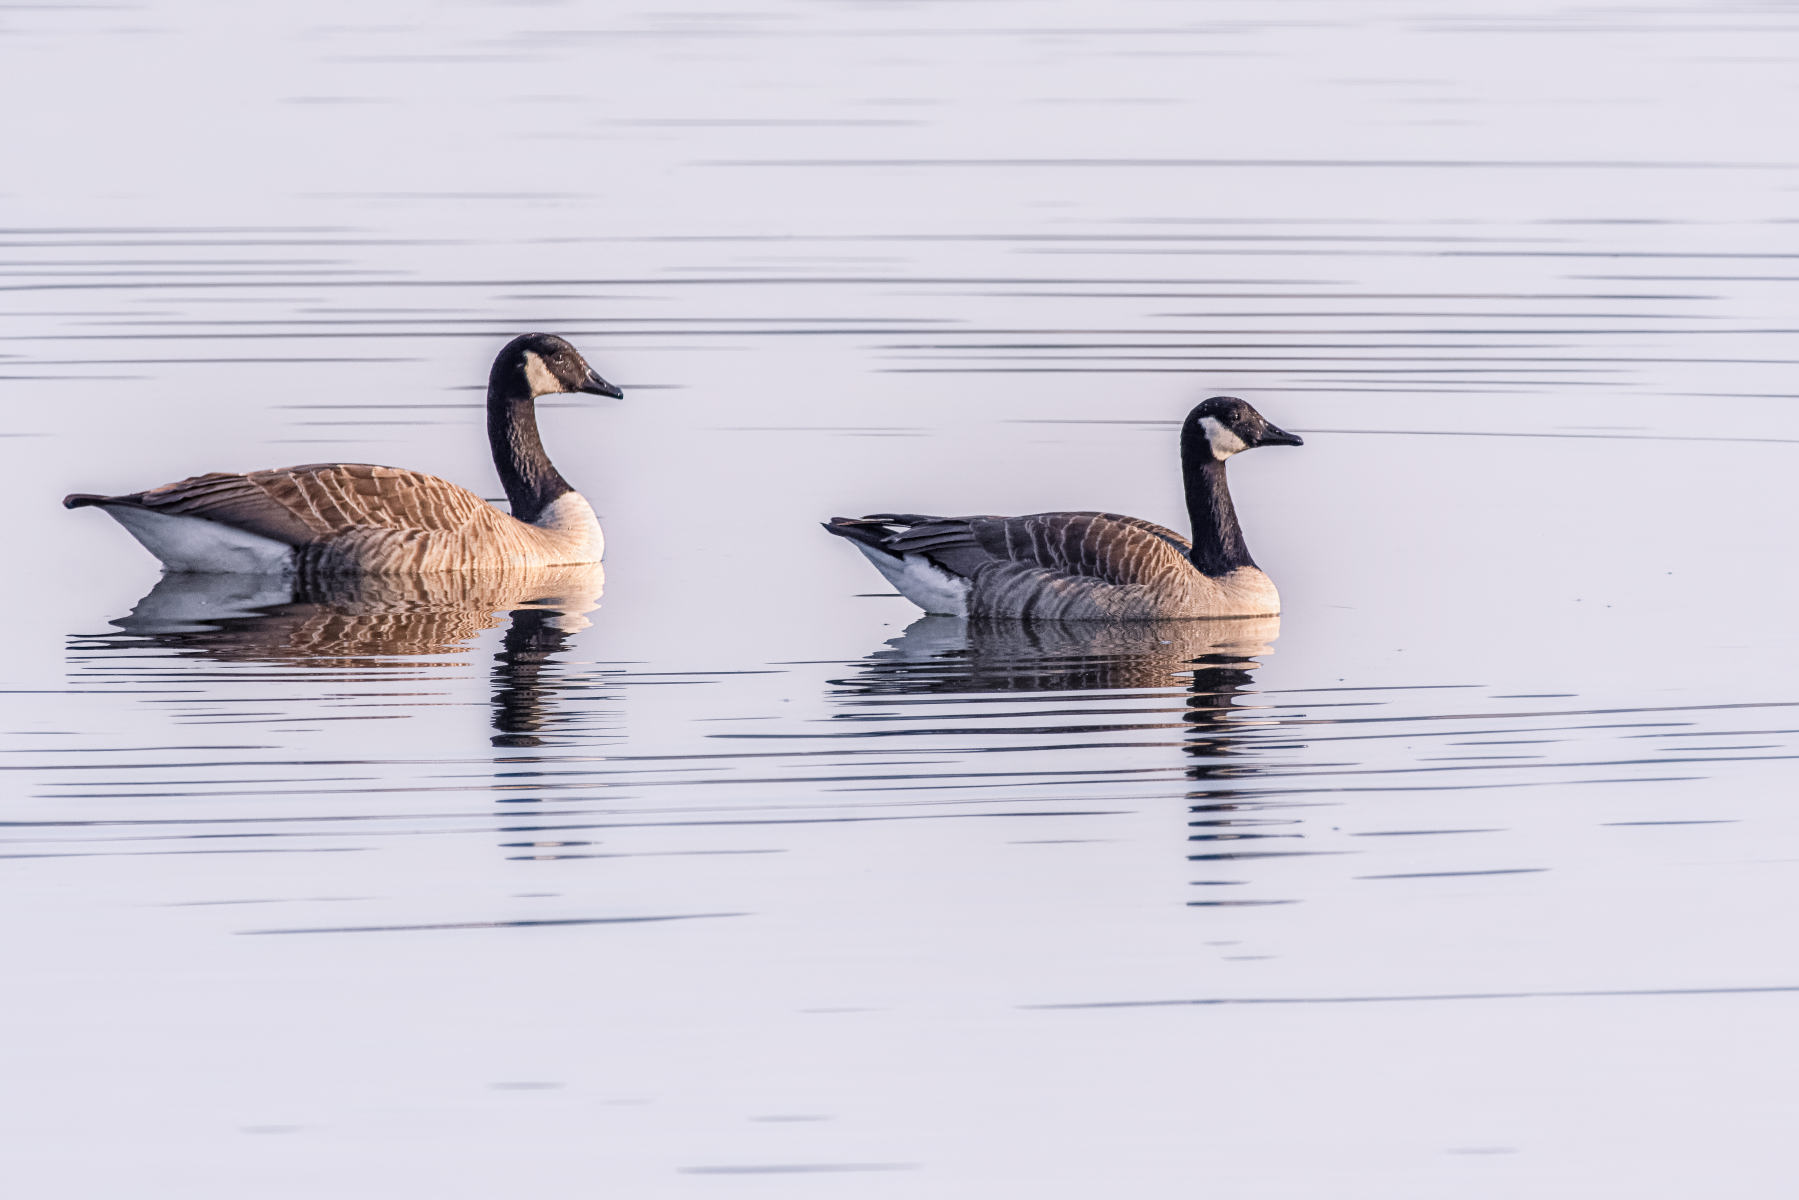 canada goose couple swimming in striped waters